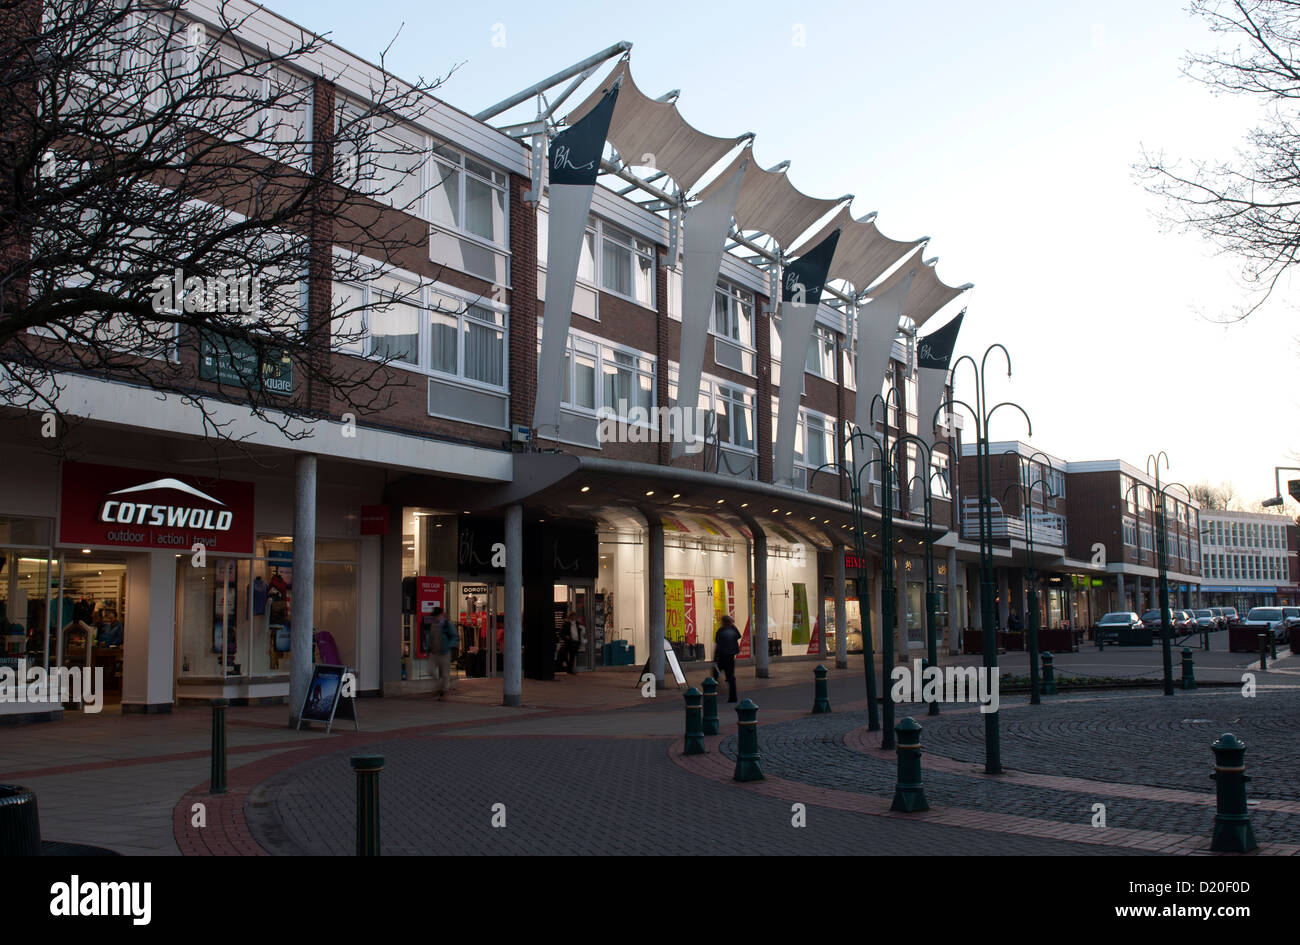 Mell Square, Solihull, West Midlands, England, UK - Stock Image